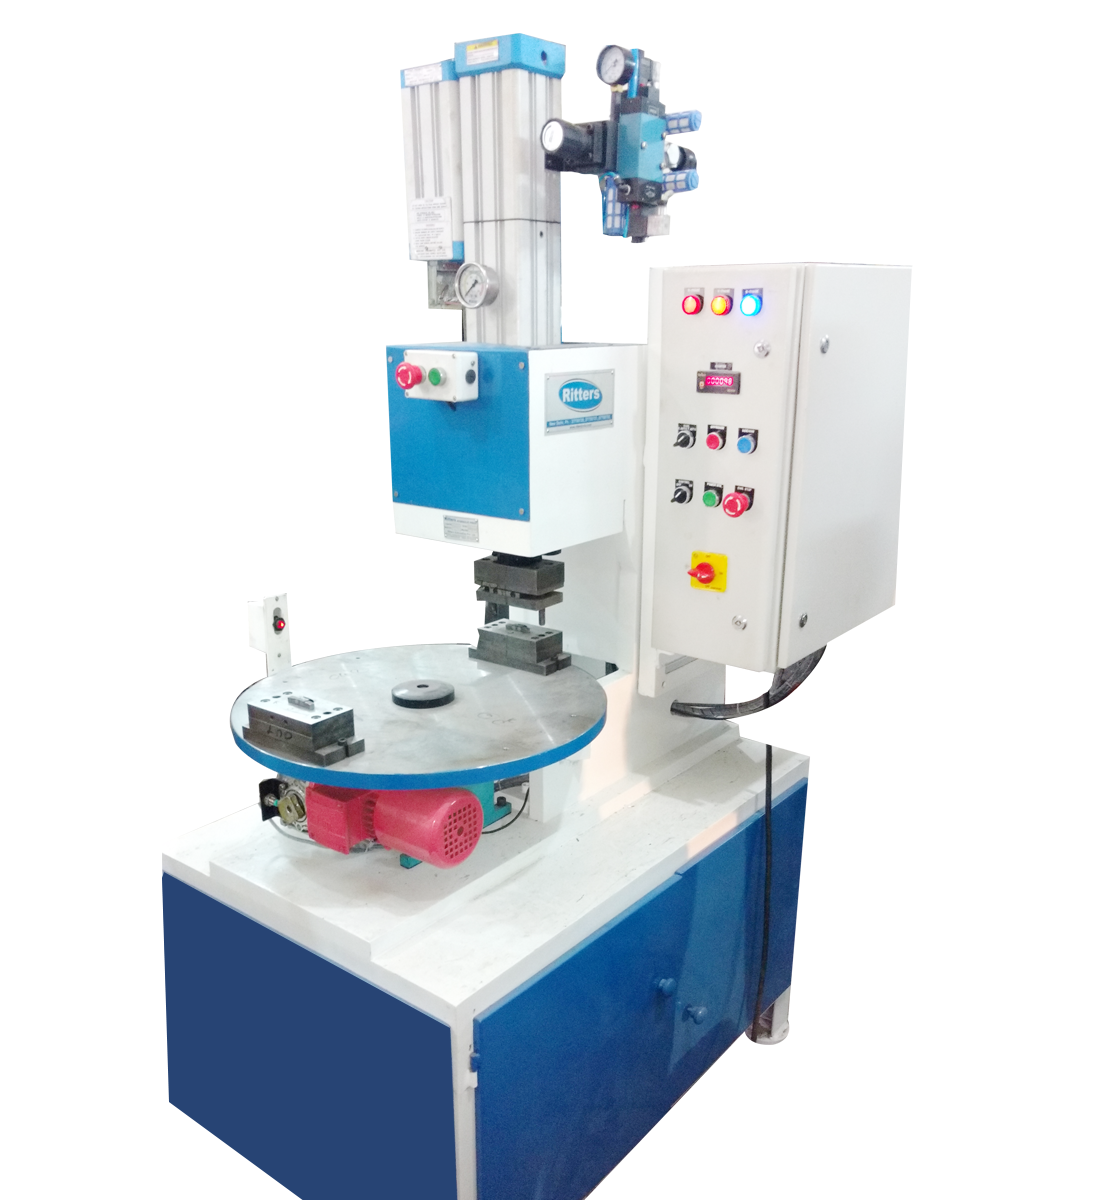 ritters Hydro Pneumatic Press With Indexing Table